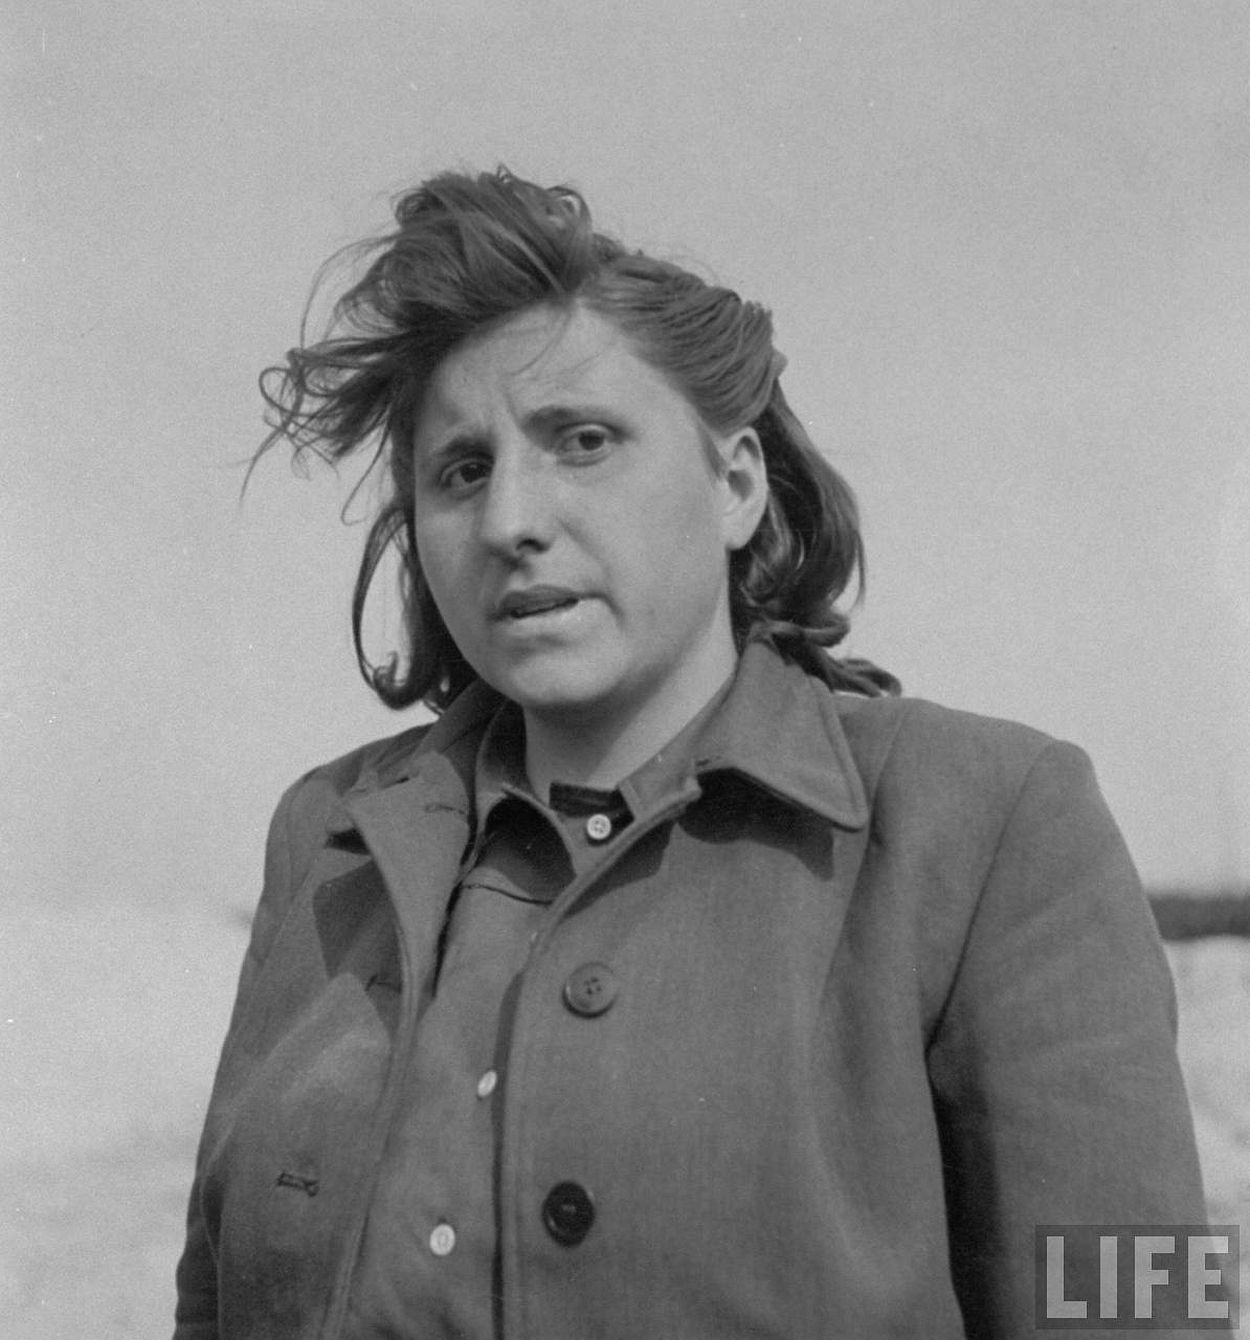 Portrait of Magdalene Kessal, 25, a domestic servant who served as SS girl at Bergen-Belsen concentration camp.